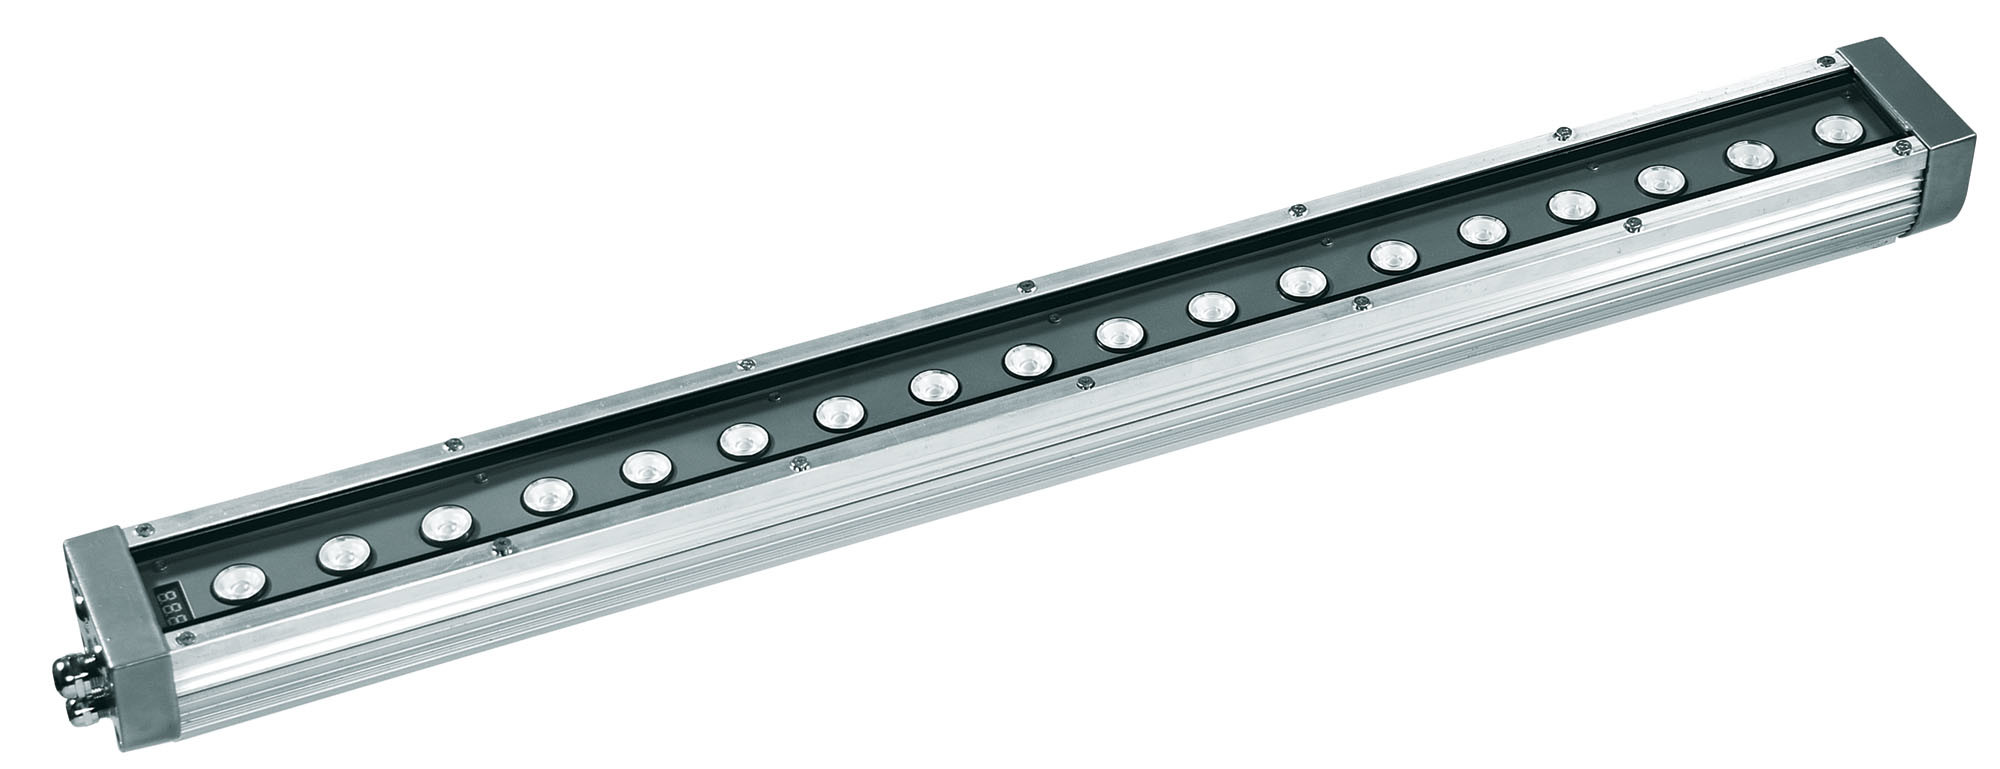 Eclairage Barre Led Barre Di Led Barre Led